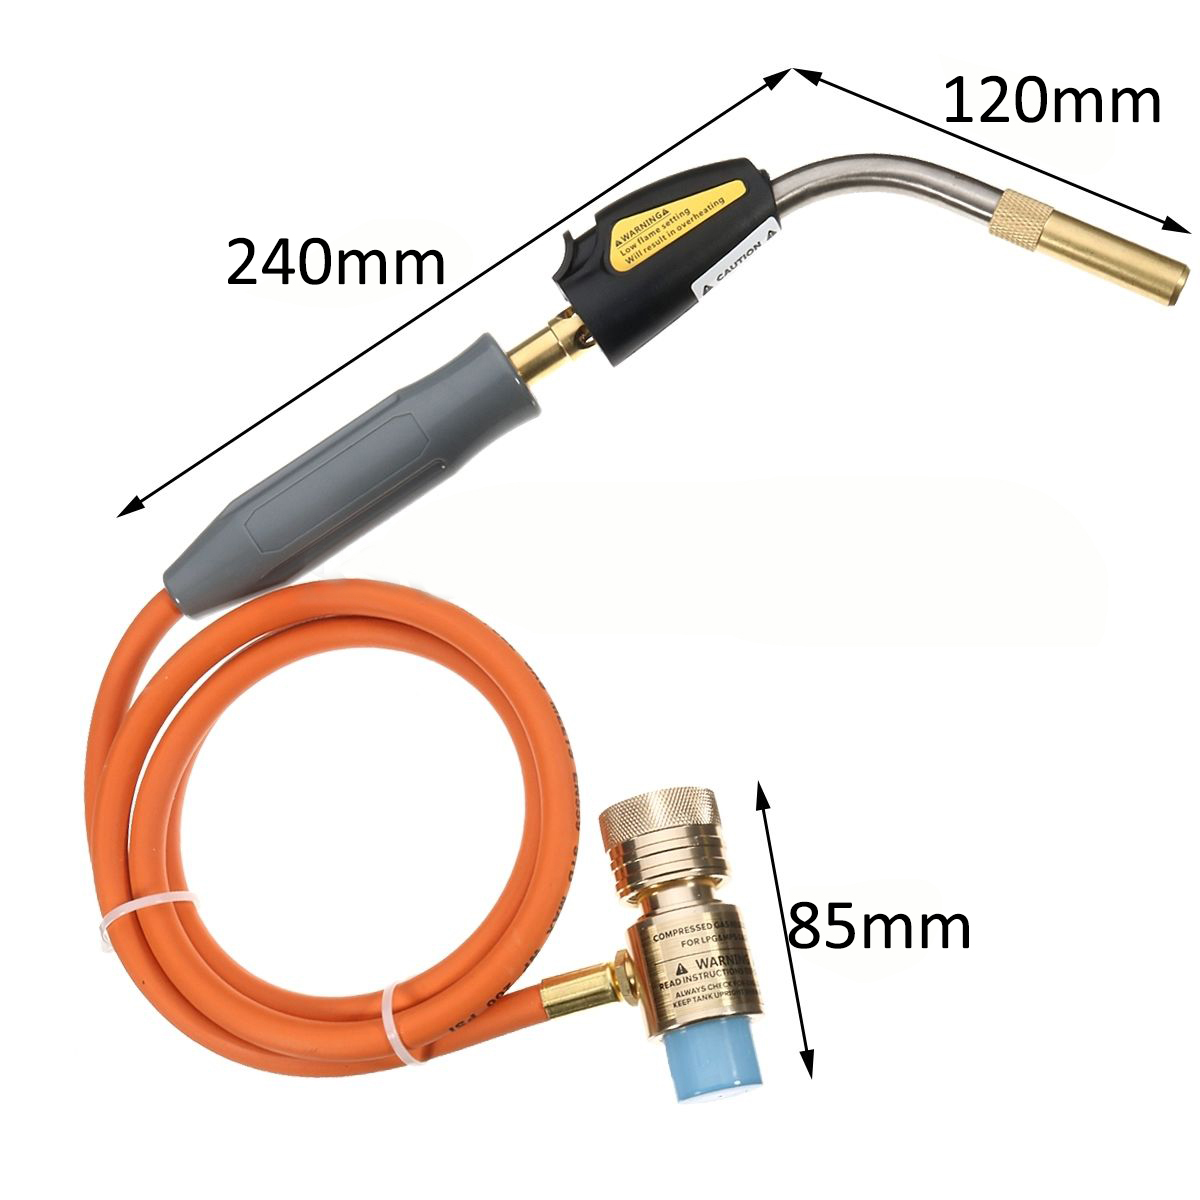 Mayitr Gas Self Igniting Turbo Torch With Hose Solder Propane Welding Torches for Plumbing Air Condition Heating Refrigeration p80 panasonic super high cost complete air cutter torches torch head body straigh machine arc starting 12foot